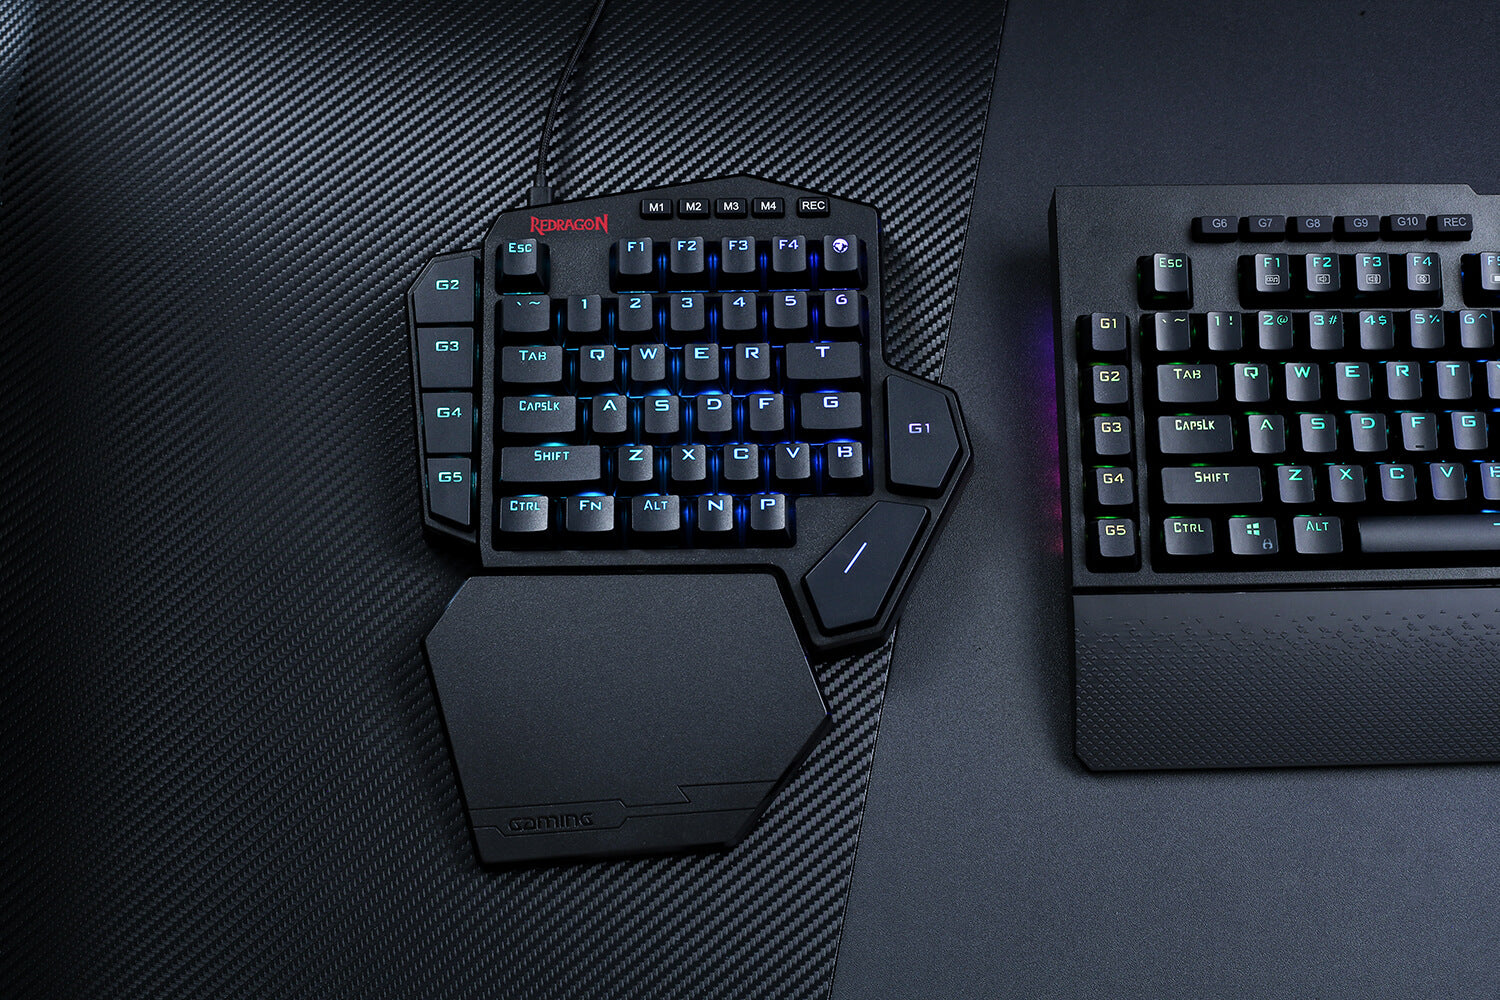 redragon one-handed keyboard